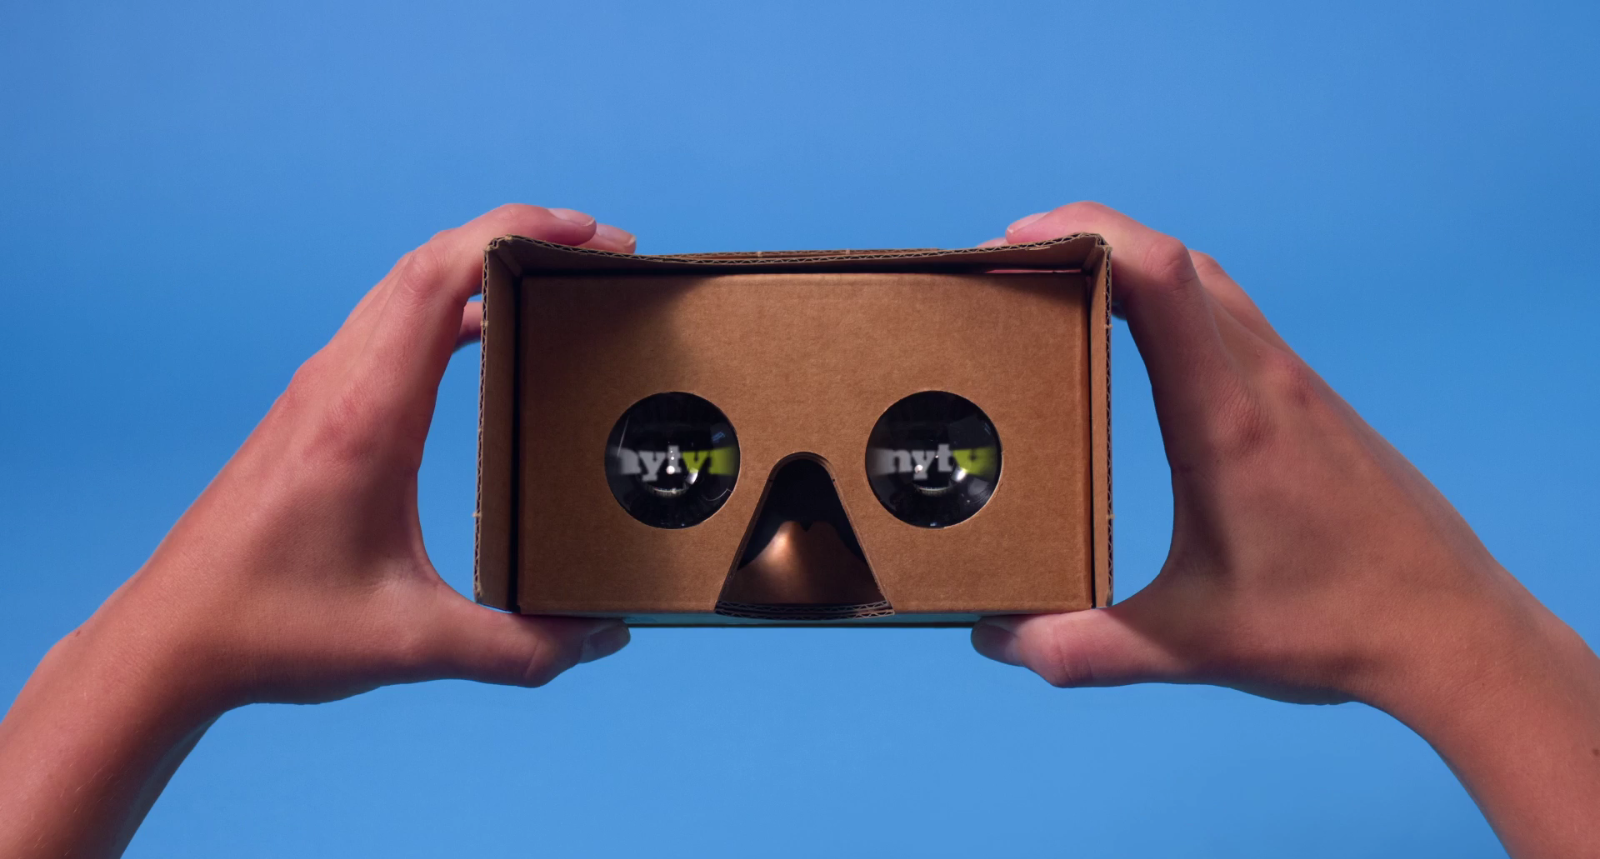 New York Times Delivers 1m Google Cardboard Viewers in VR Launch